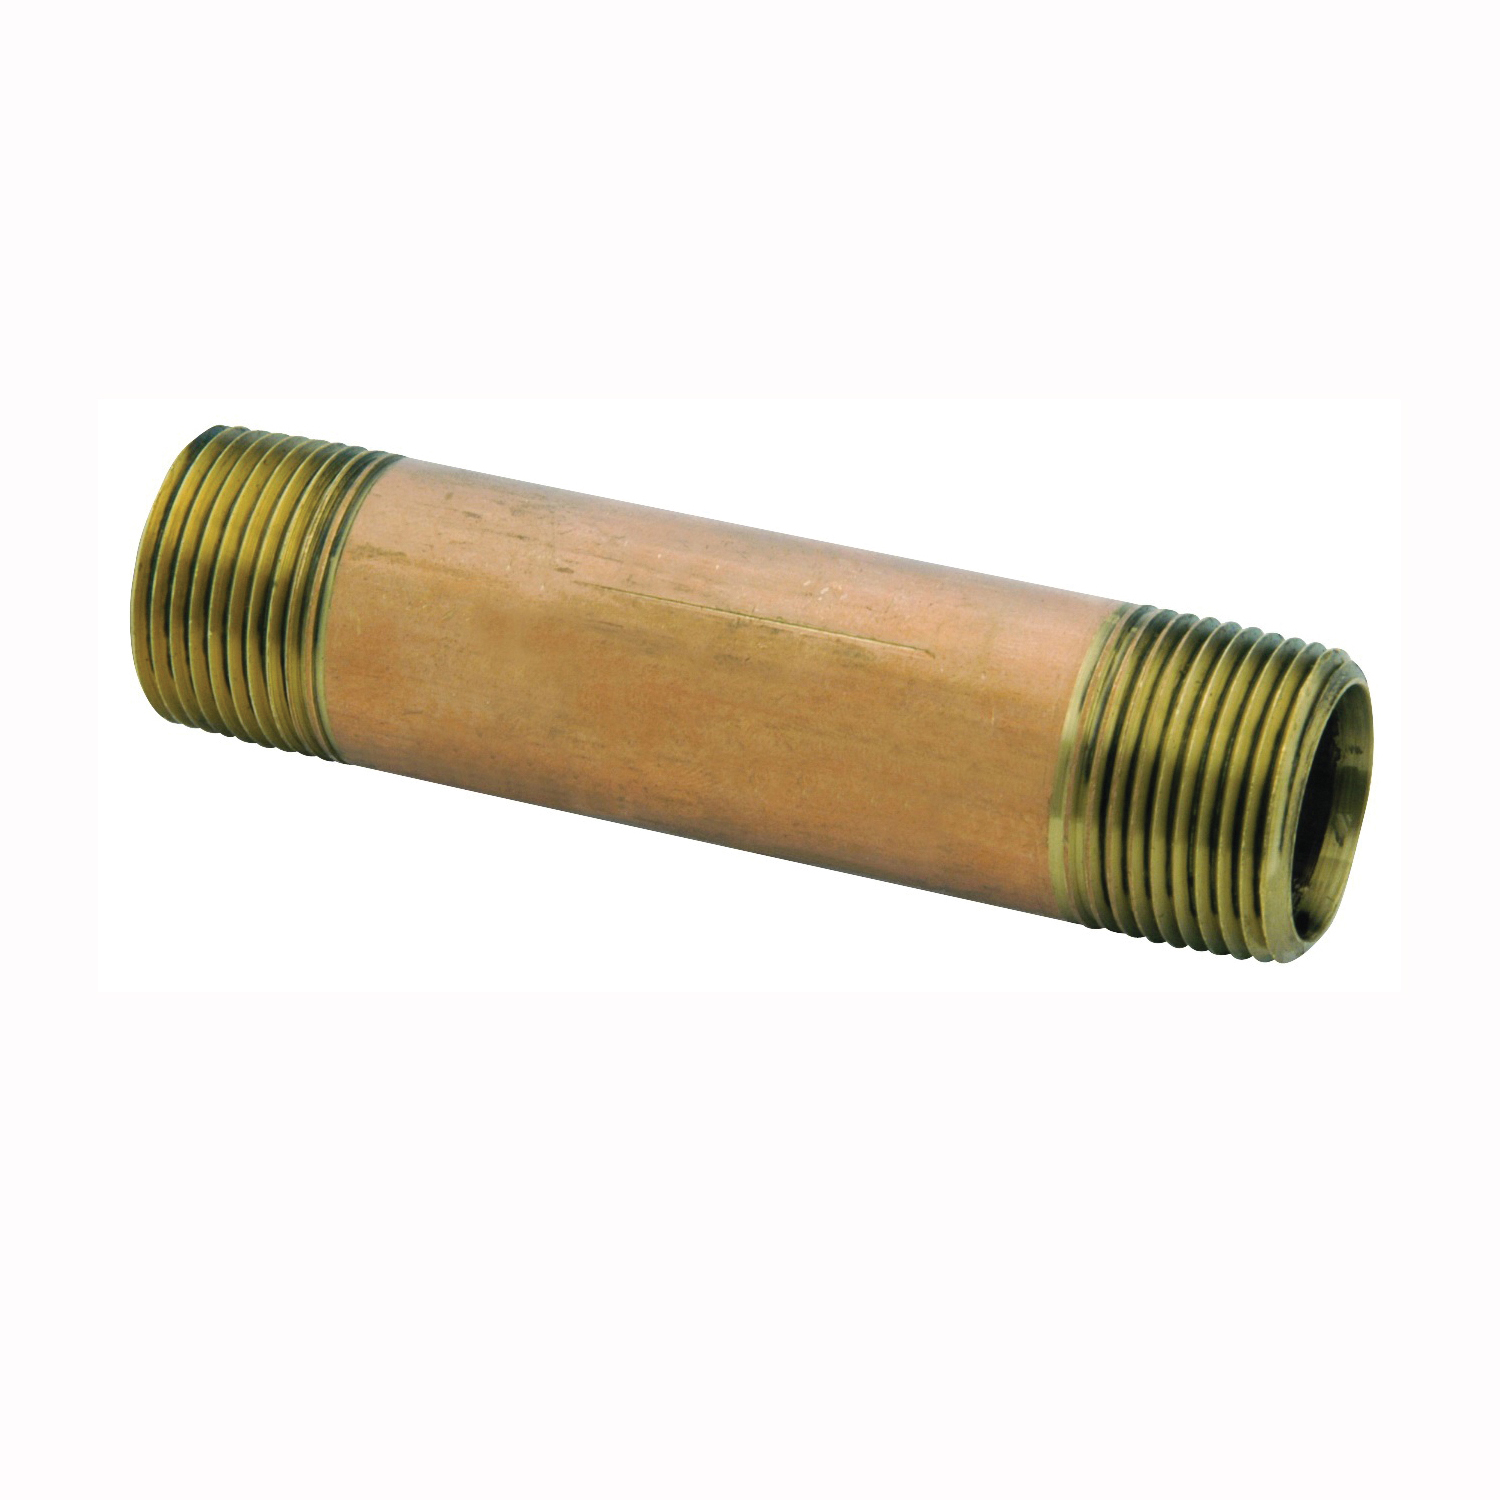 Picture of Anderson Metals 38300-0640 Pipe Nipple, 3/8 in, NPT, Brass, 890 psi Pressure, 4 in L